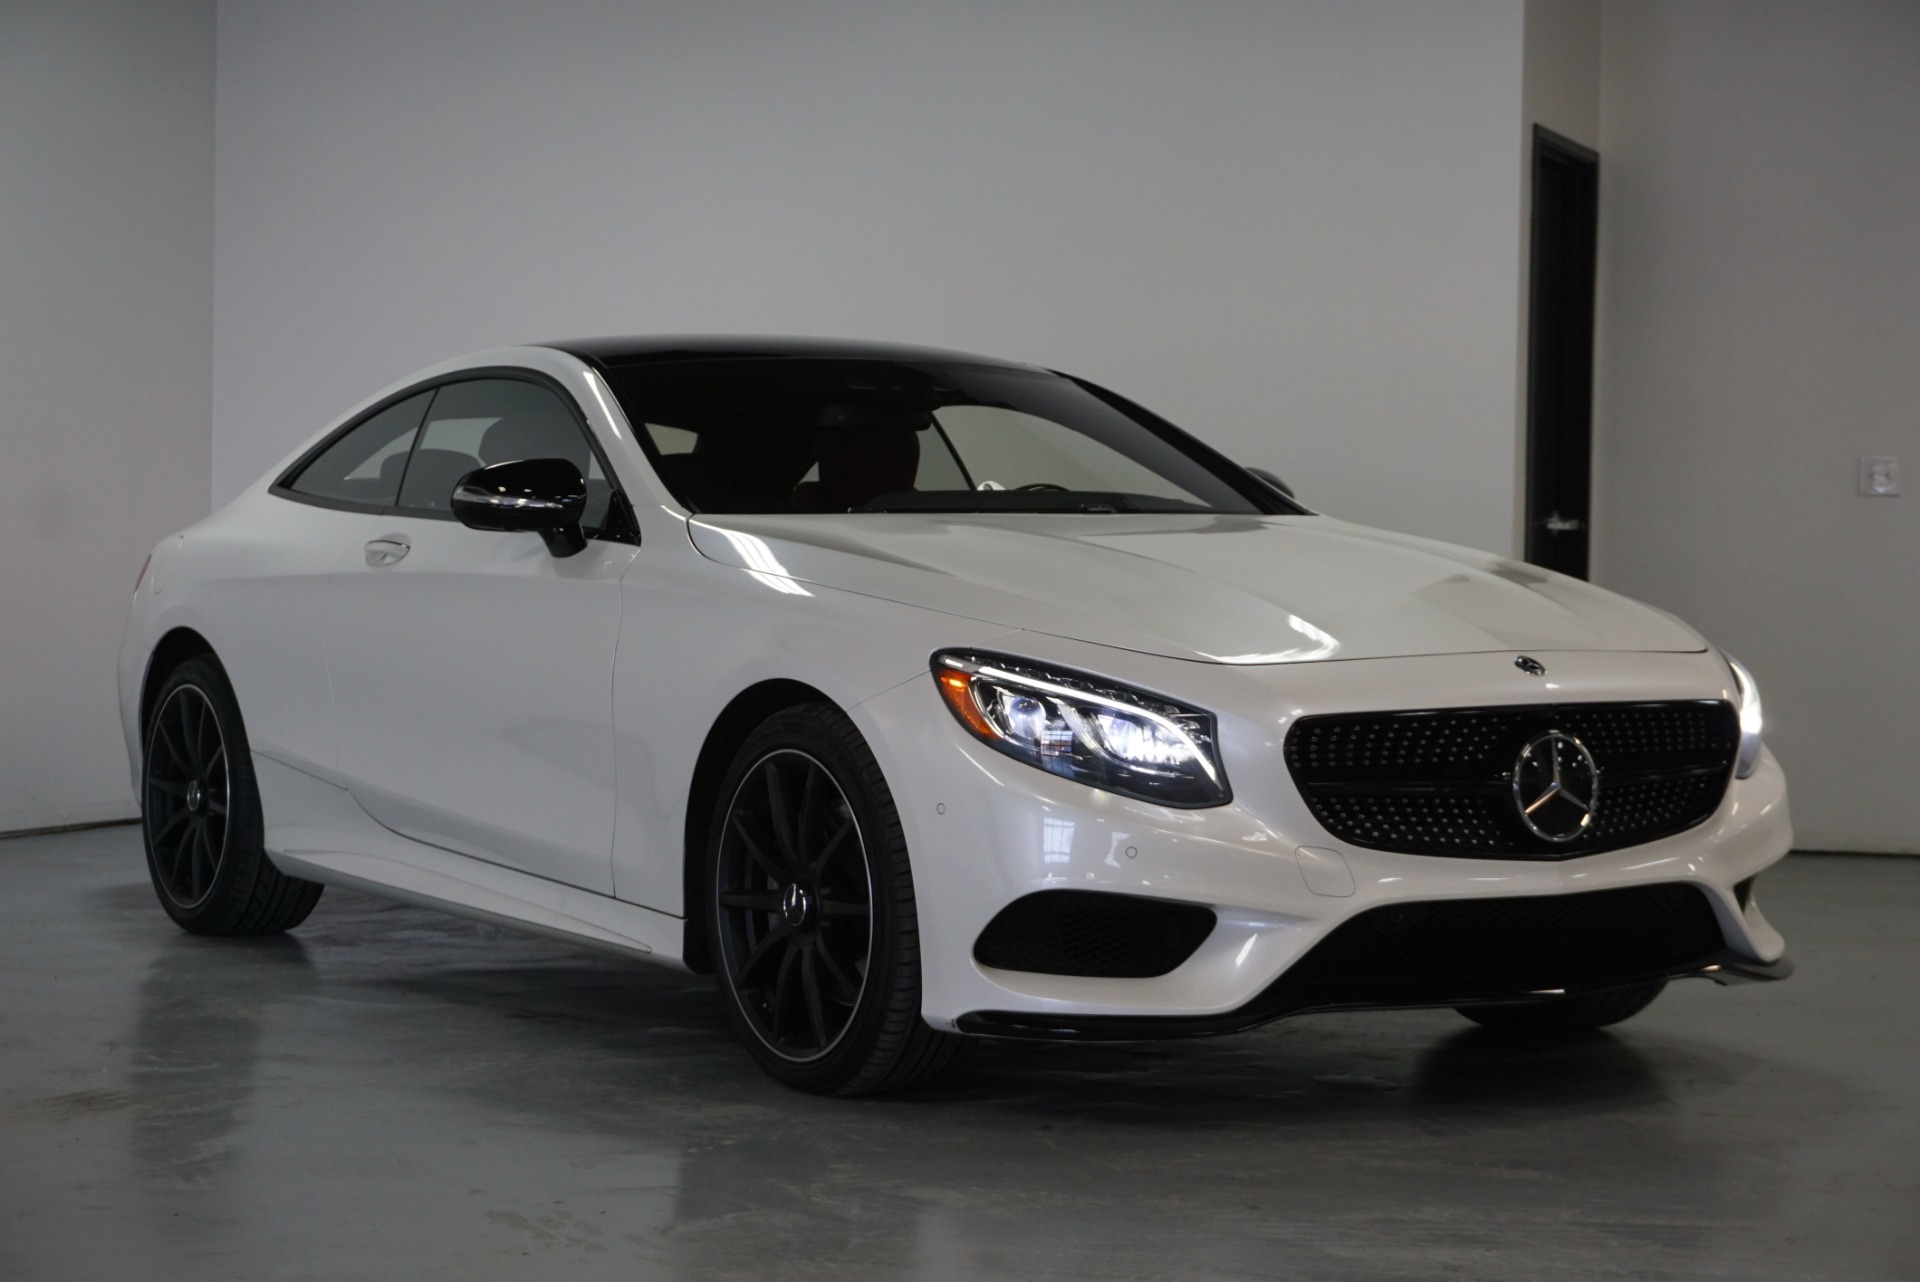 Used 2016 Designo Diamond White Metallic Mercedes Benz S Class Coupe S550 Awd S 550 4matic For Sale Sold Prime Motorz Stock 2623